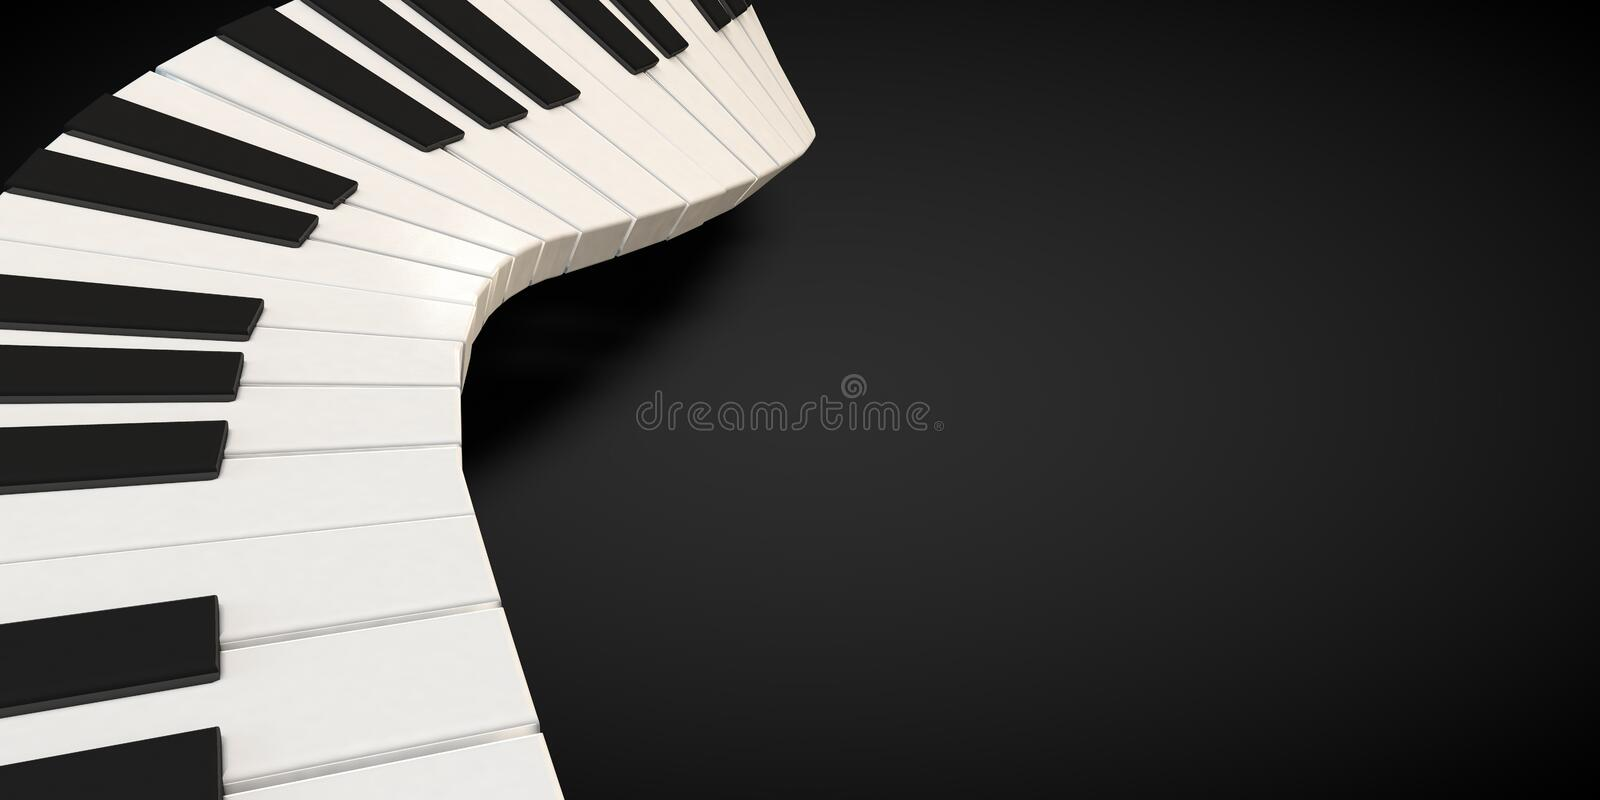 Download 3d Render Of A Piano Keyboard In A Fluid Wavelike Movement Stock Illustration - Illustration: 89298531